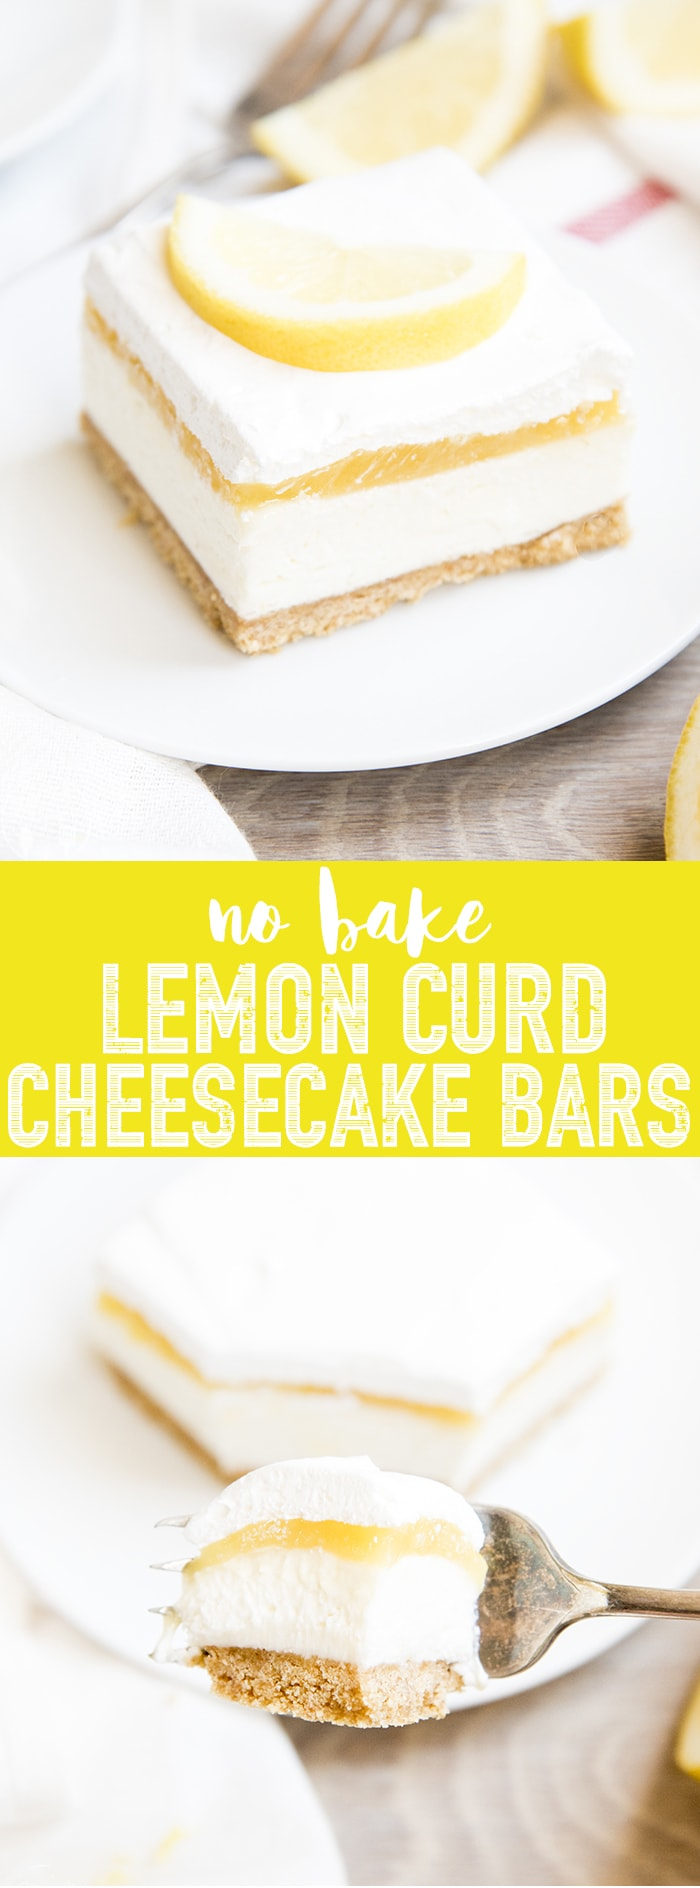 No Bake Lemon Curd Cheesecake Bars are the perfect cool, sweet, and tangy dessert. With an easy no bake cheesecake topped with lemon curd and whipped cream for a refreshing dessert you'll want all summer long!